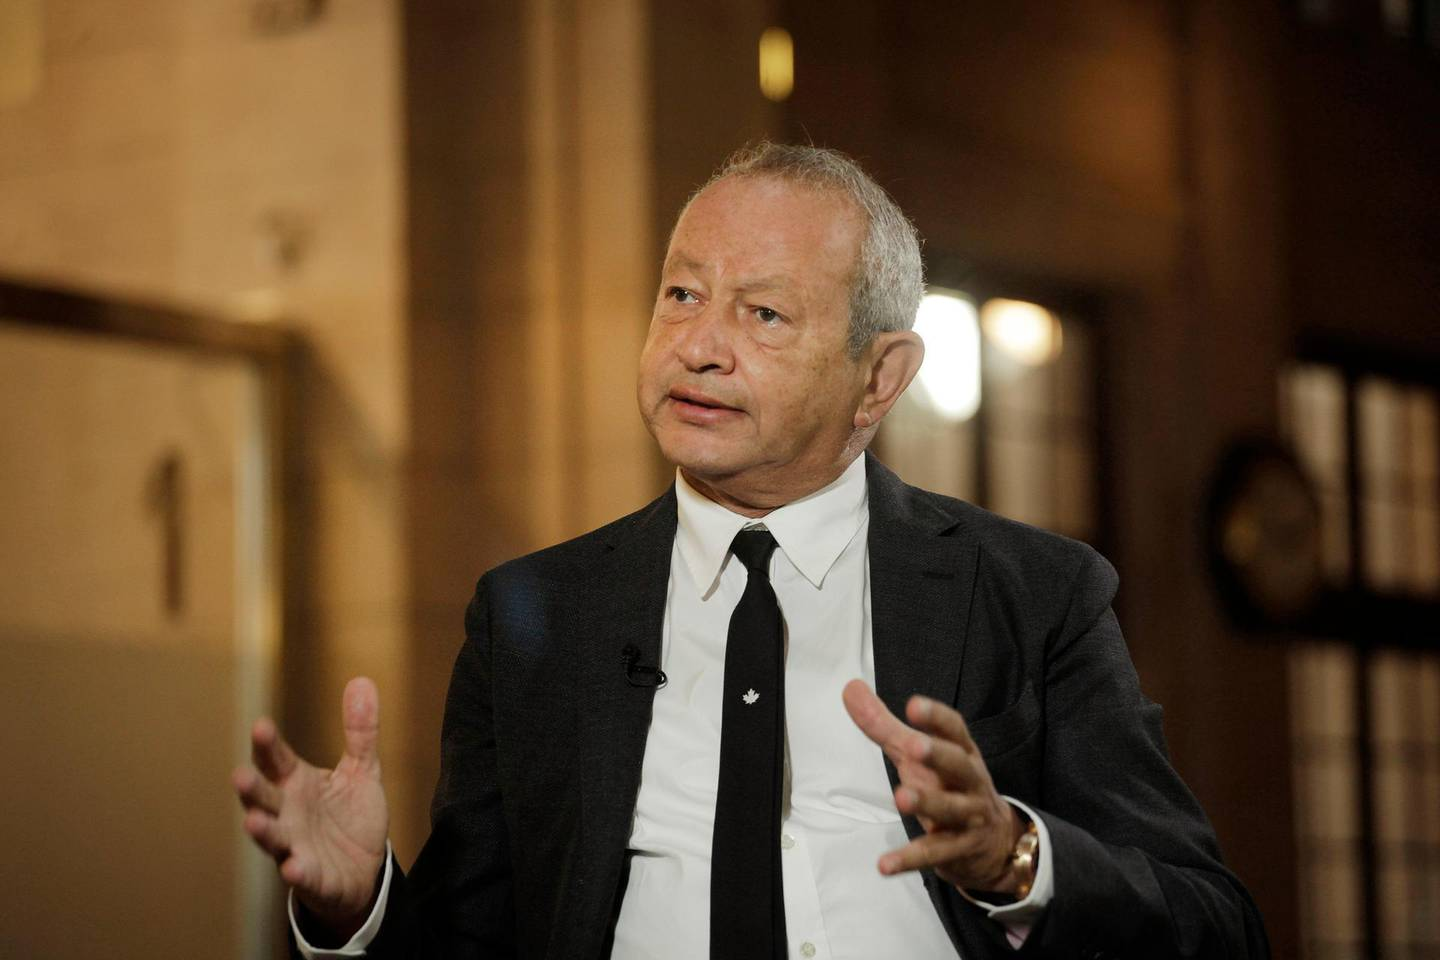 Naguib Sawiris, chairman and chief executive officer of Orascom Telecom Media And Technology Holding SAE, speaks during a Bloomberg Television interview on the sidelines of the Argentina Business & Investment forum in Buenos Aires, Argentina, on Tuesday, Sept. 13, 2016. Sawiris says he's interested in investment opportunities in Argentina and Brazil, mainly in the mining and telecommunications industries. Photographer: Diego Levy/Bloomberg